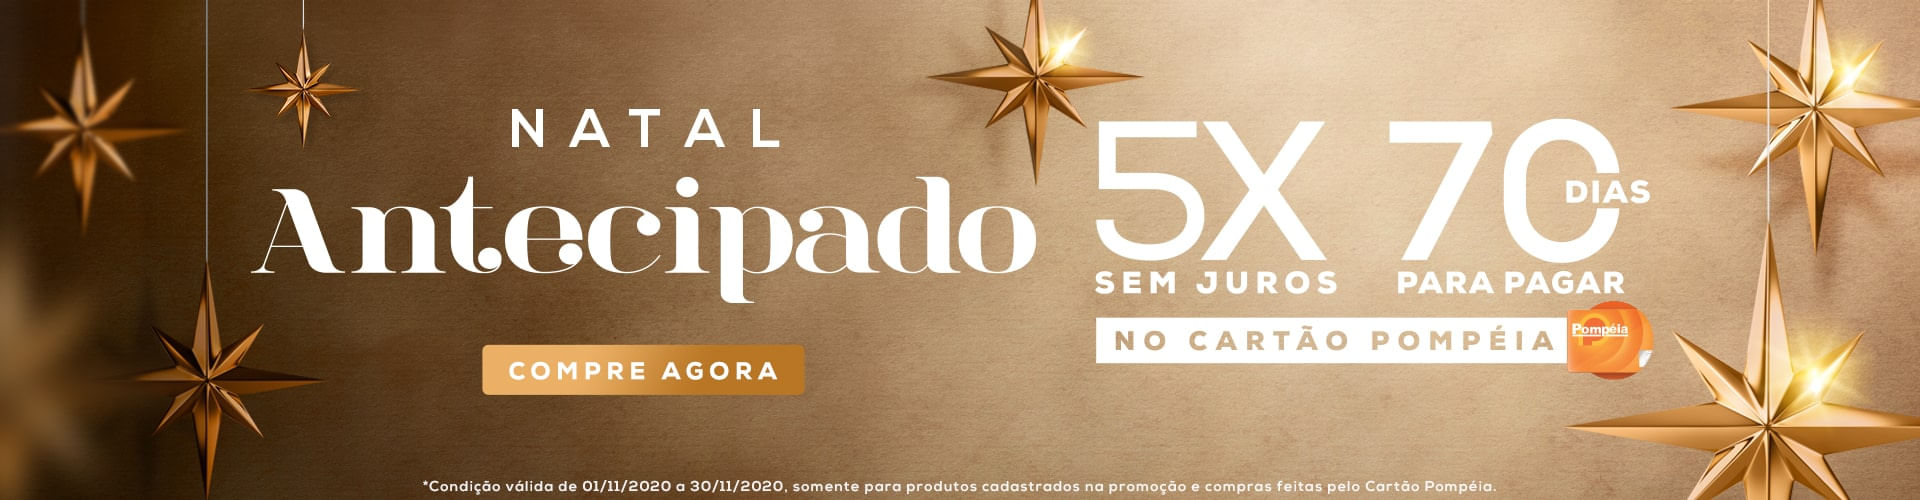 Natal Antecipado, encontre o presente ideal!